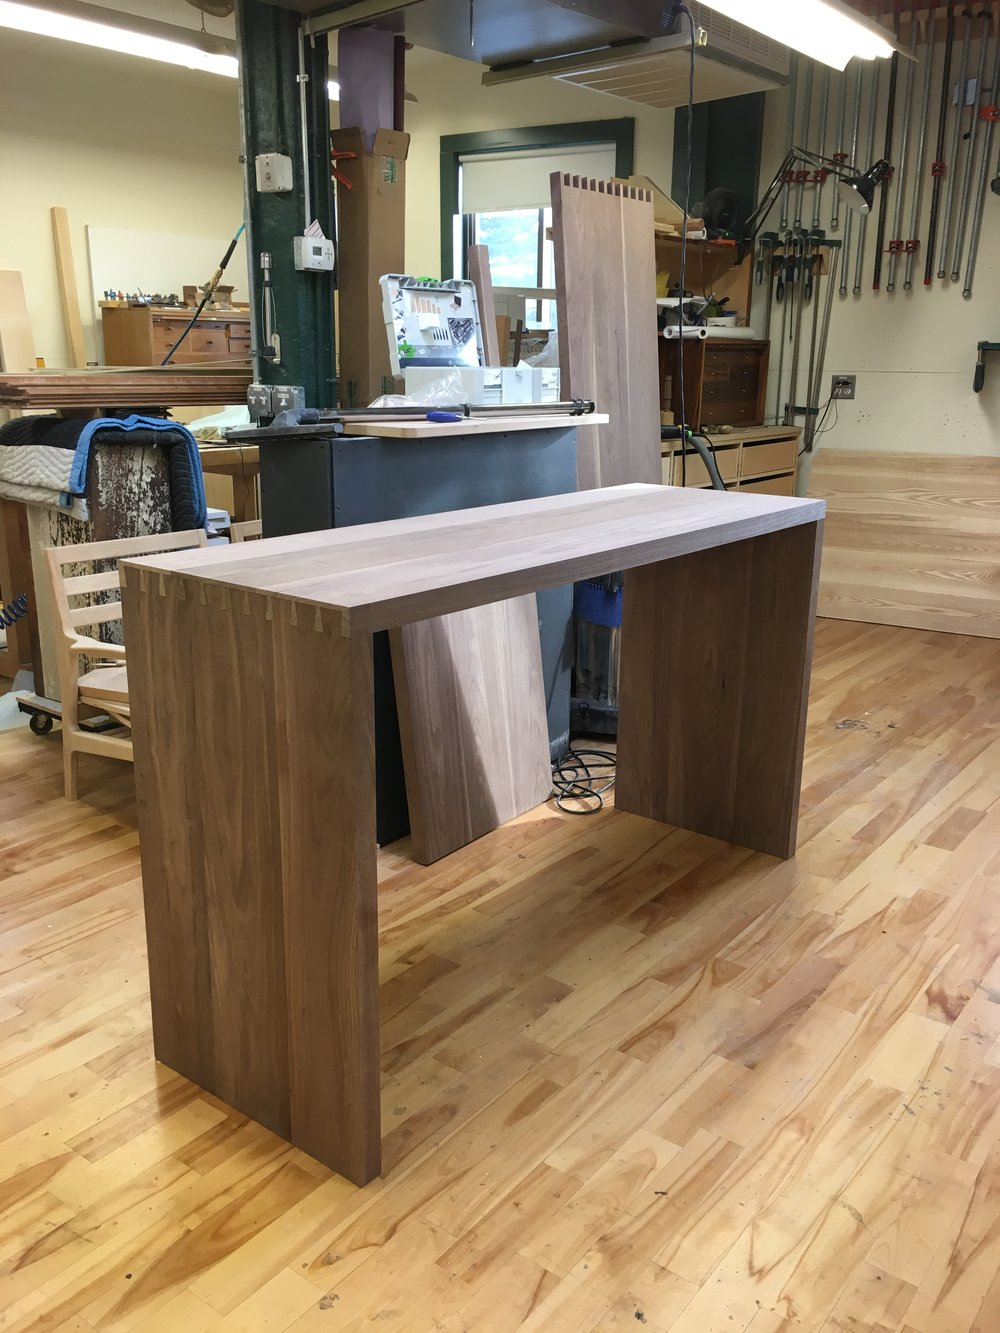 Hone Design Co._Wellesley Desk Process 11